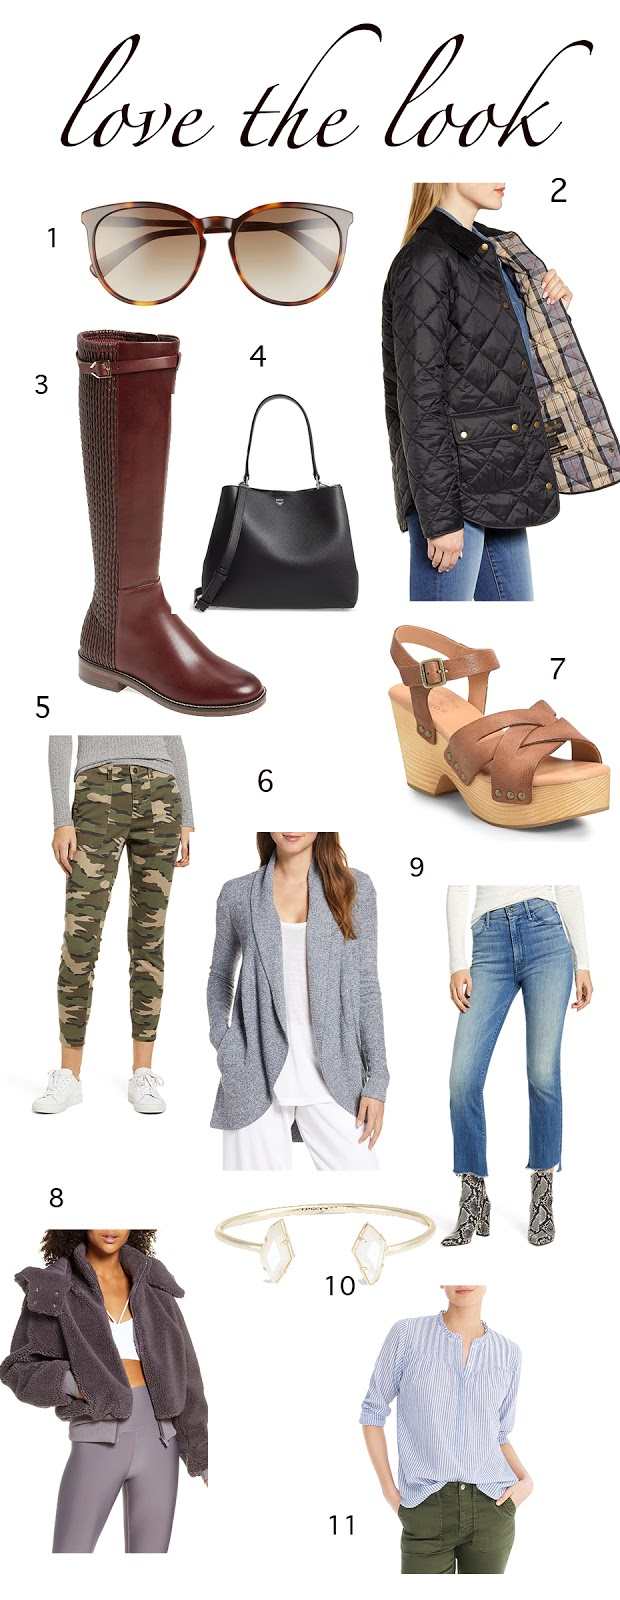 Nordstrom Anniversary Sale - My picks!